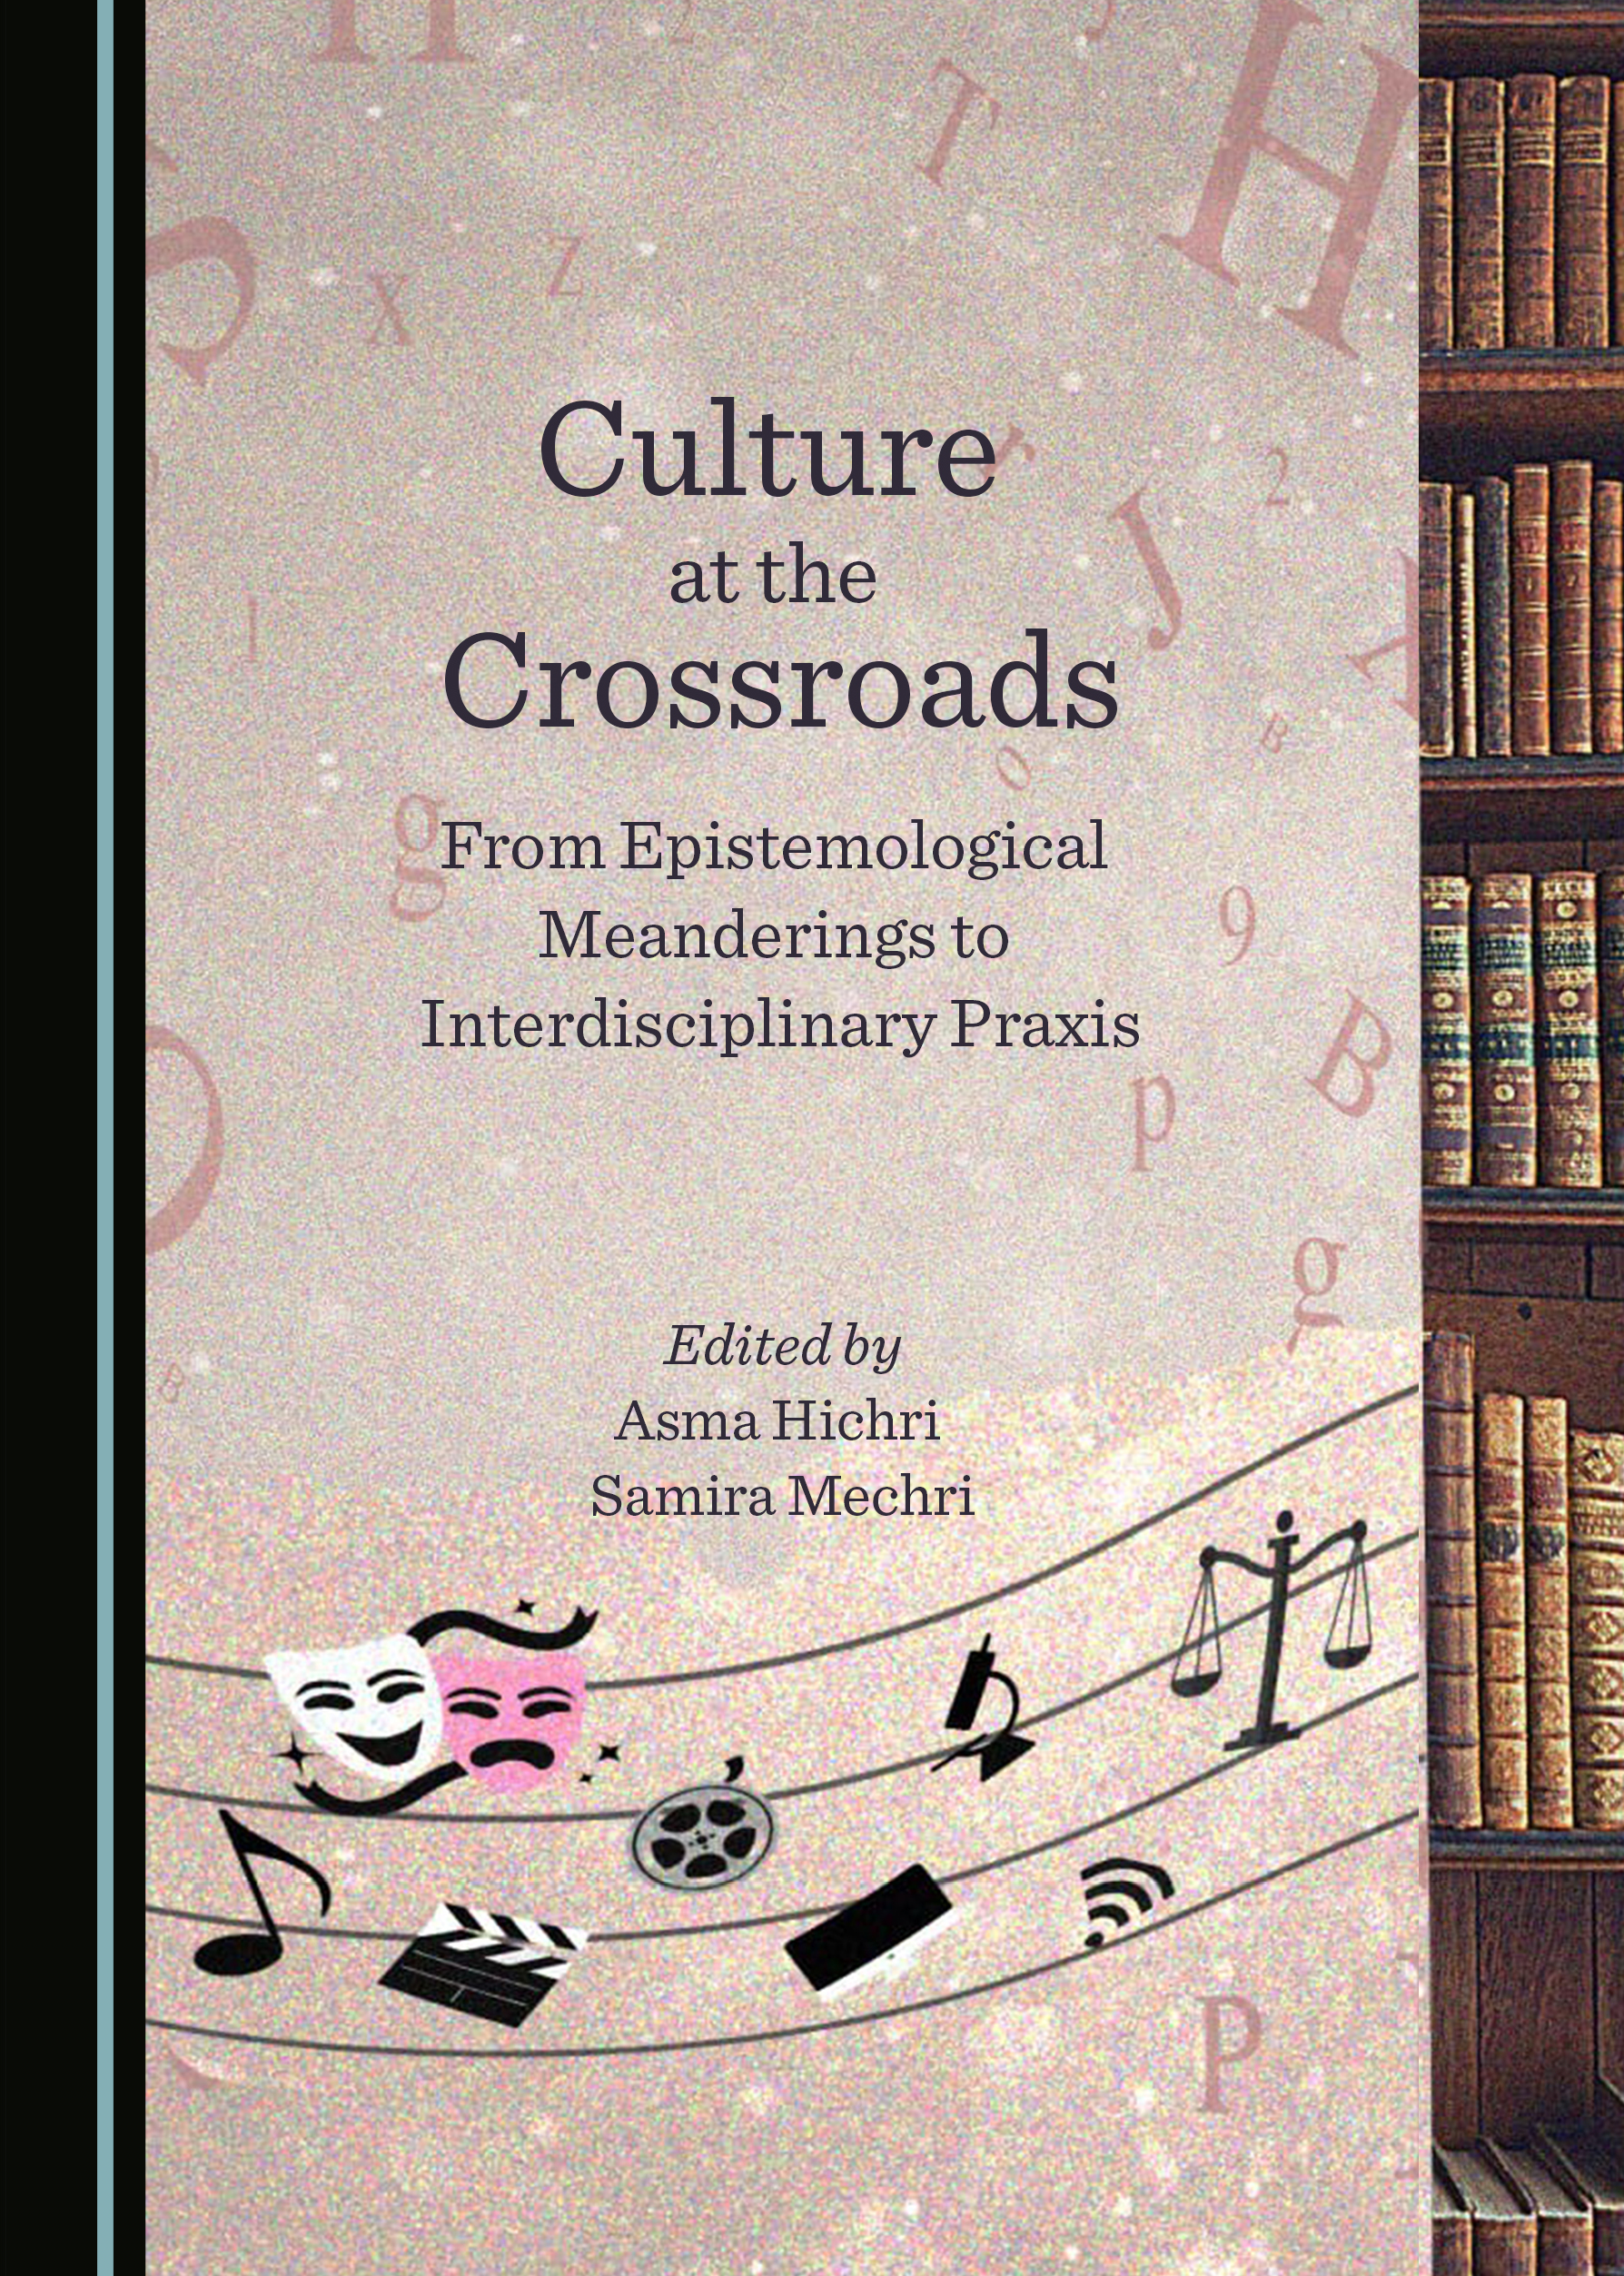 Culture at the Crossroads: From Epistemological Meanderings to Interdisciplinary Praxis